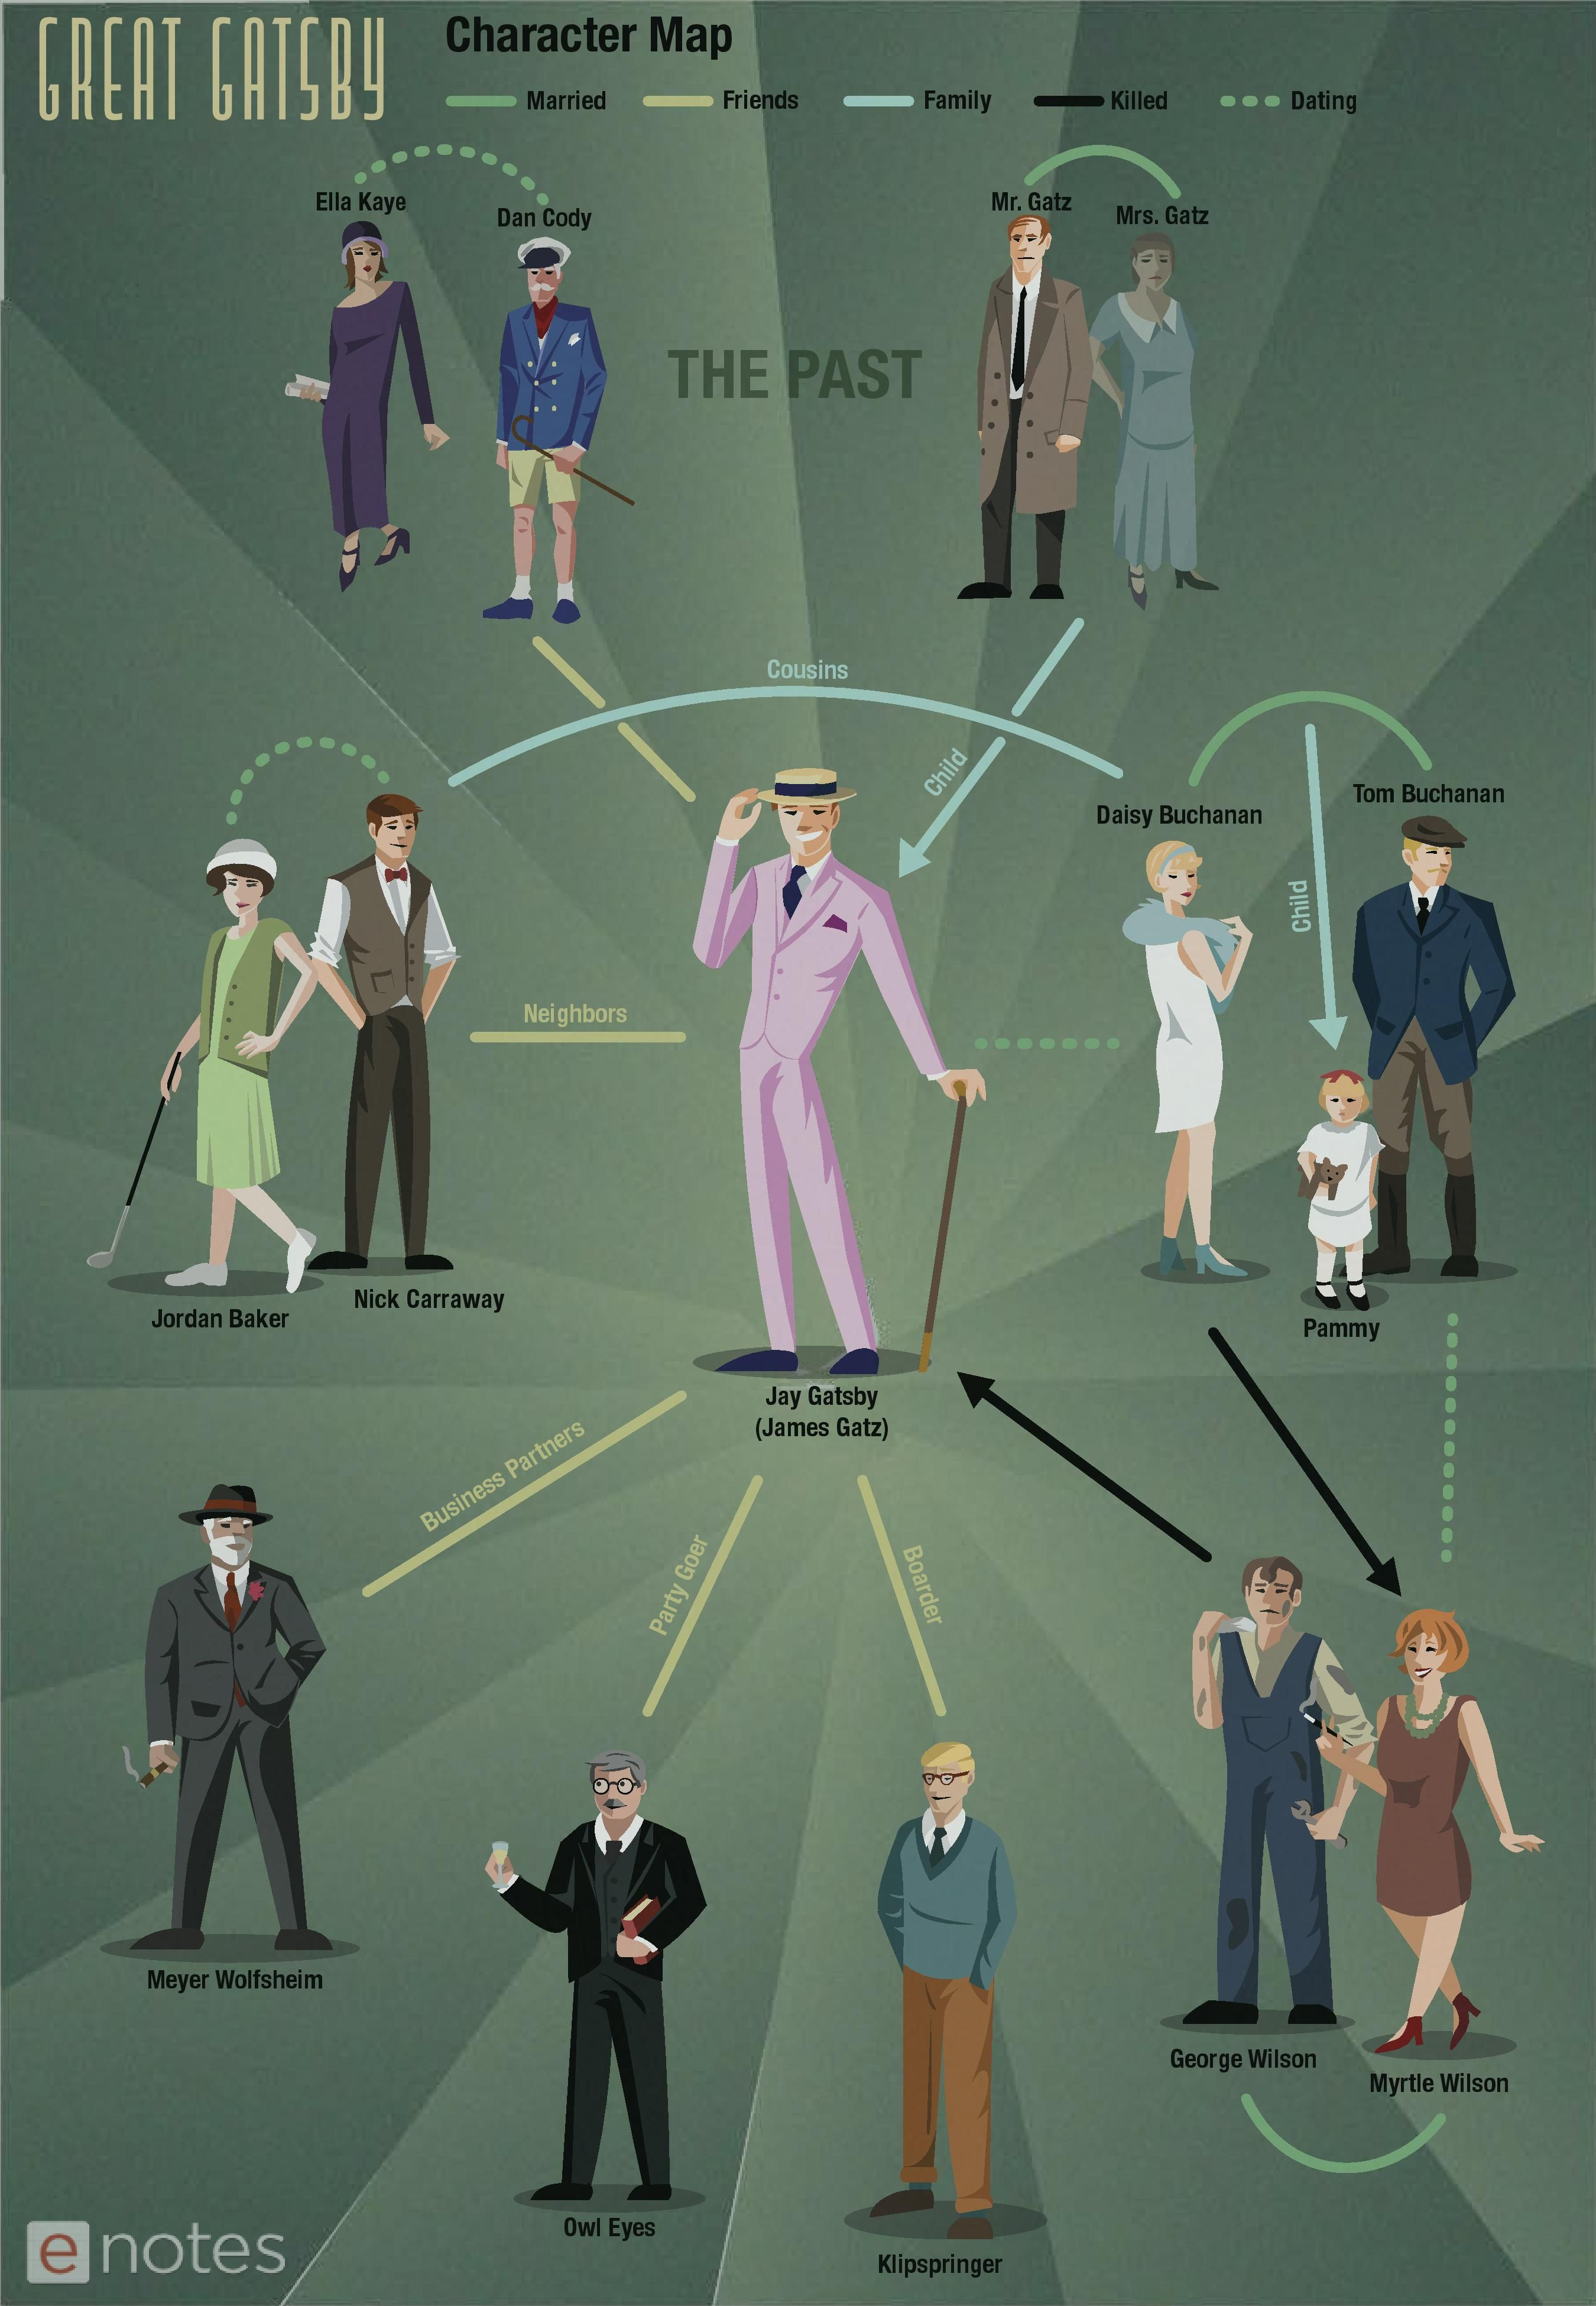 the great gatsby enotes character map infographic student this enotes original character map of the great gatsby by f scott